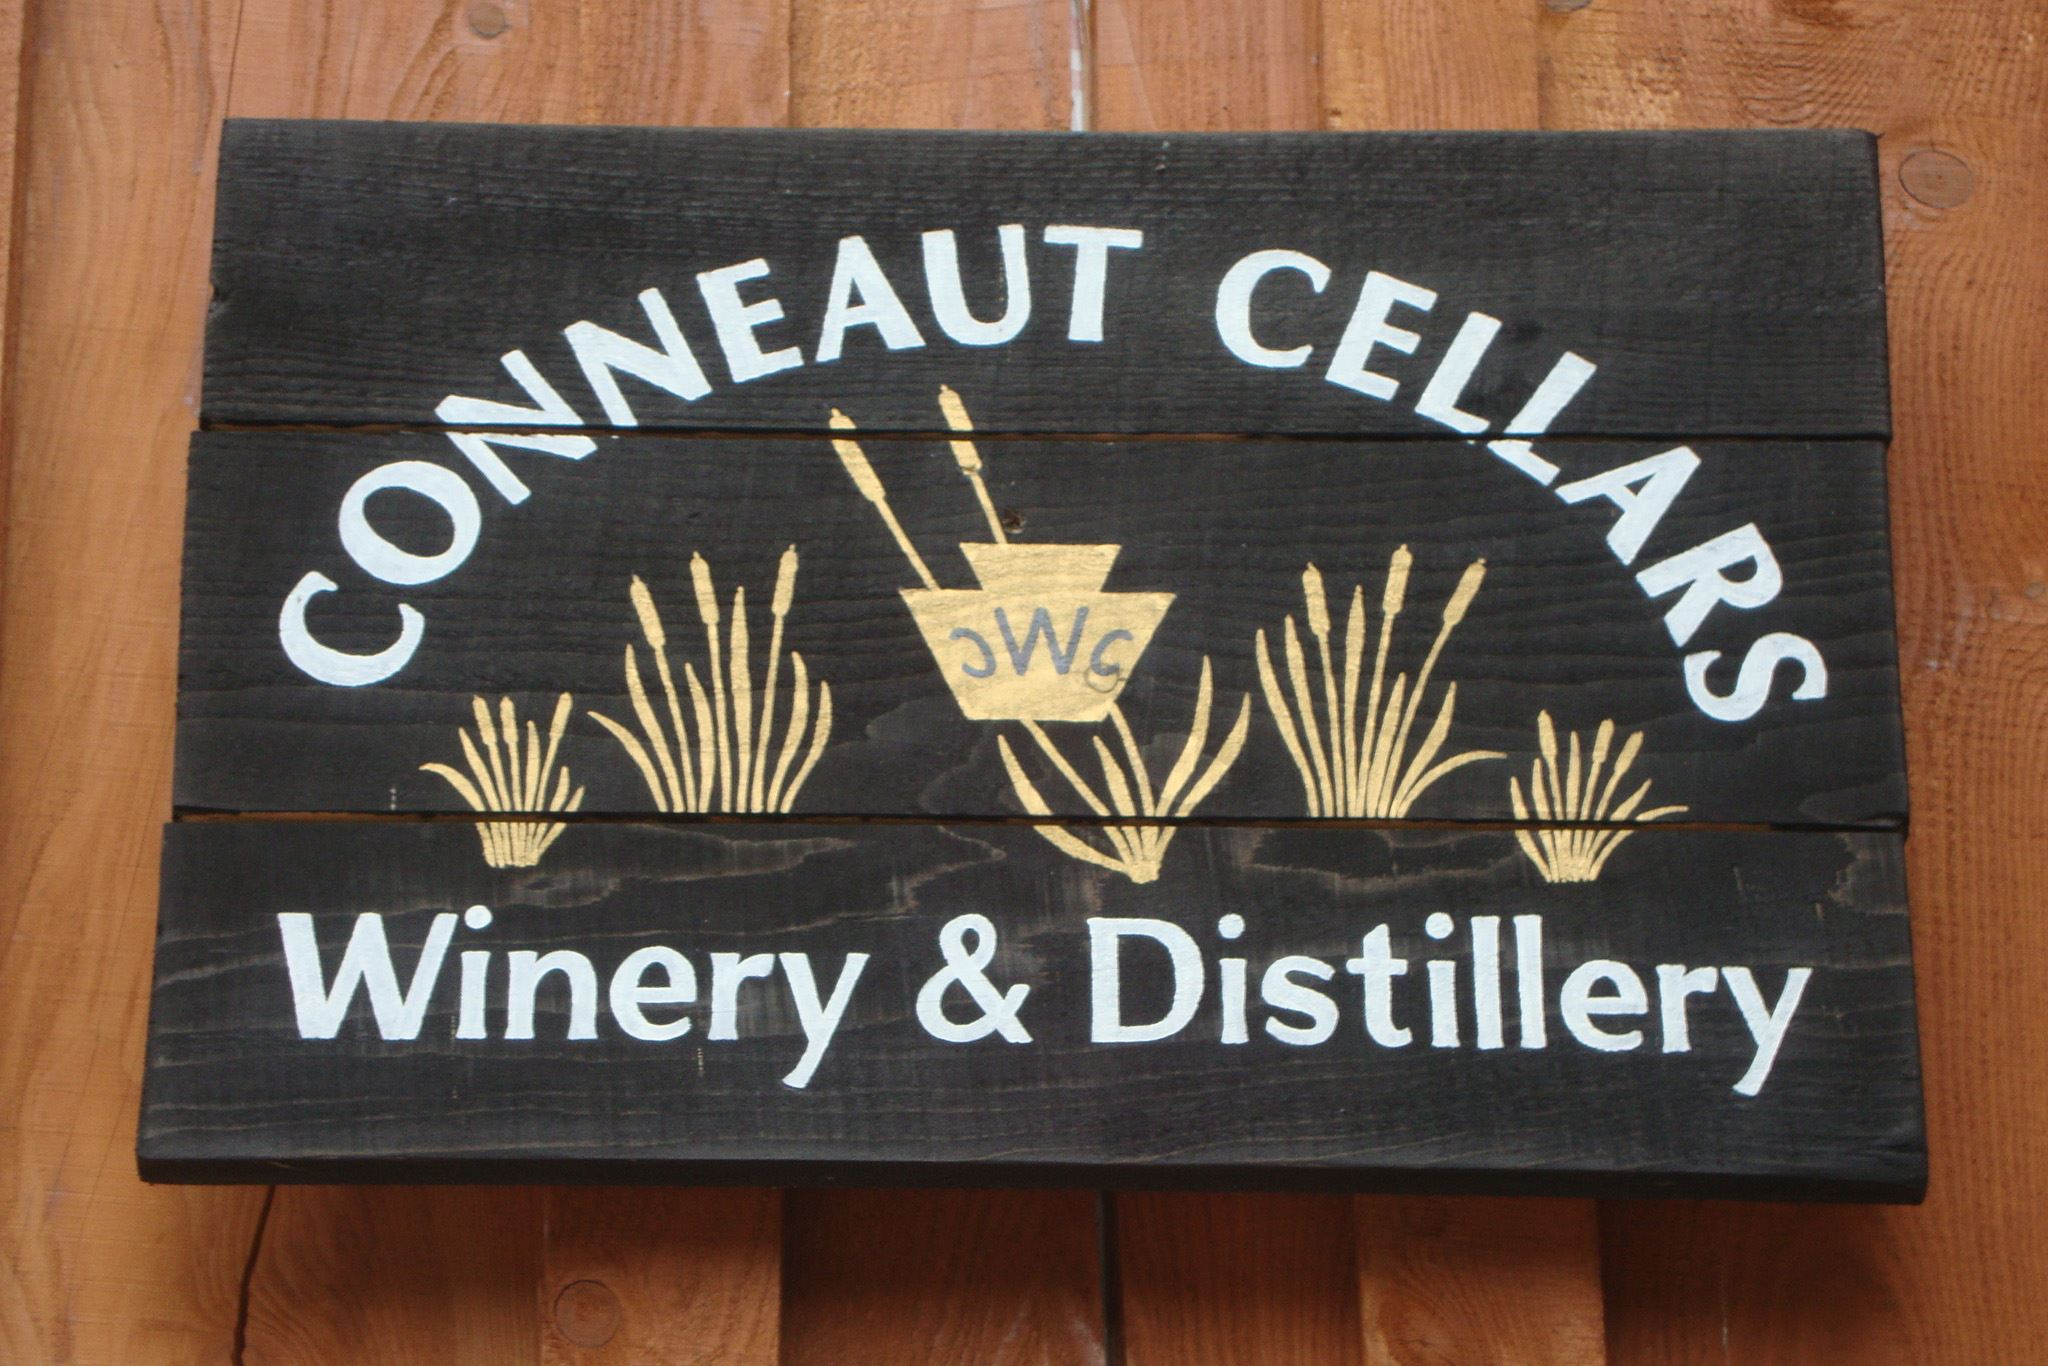 DoorSign-2 Door sign for Conneaut Cellars Winery & Distillery in Conneaut Lake.